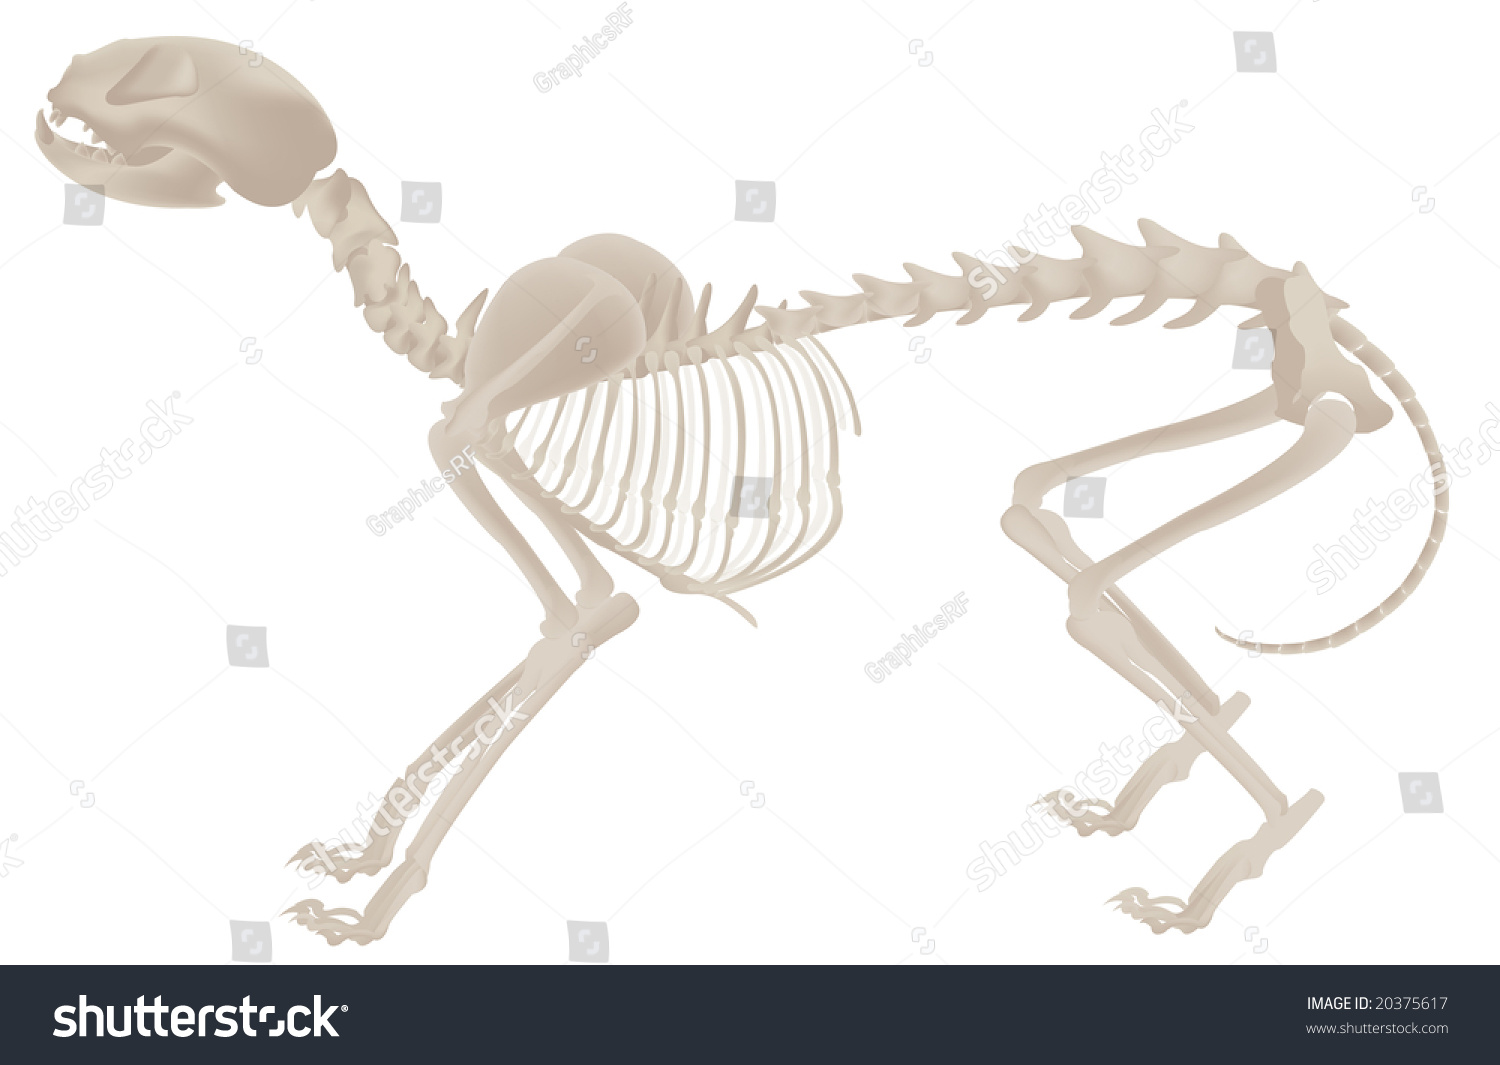 Dog Bones Structure Skeletal System Illustration Stock Illustration ...